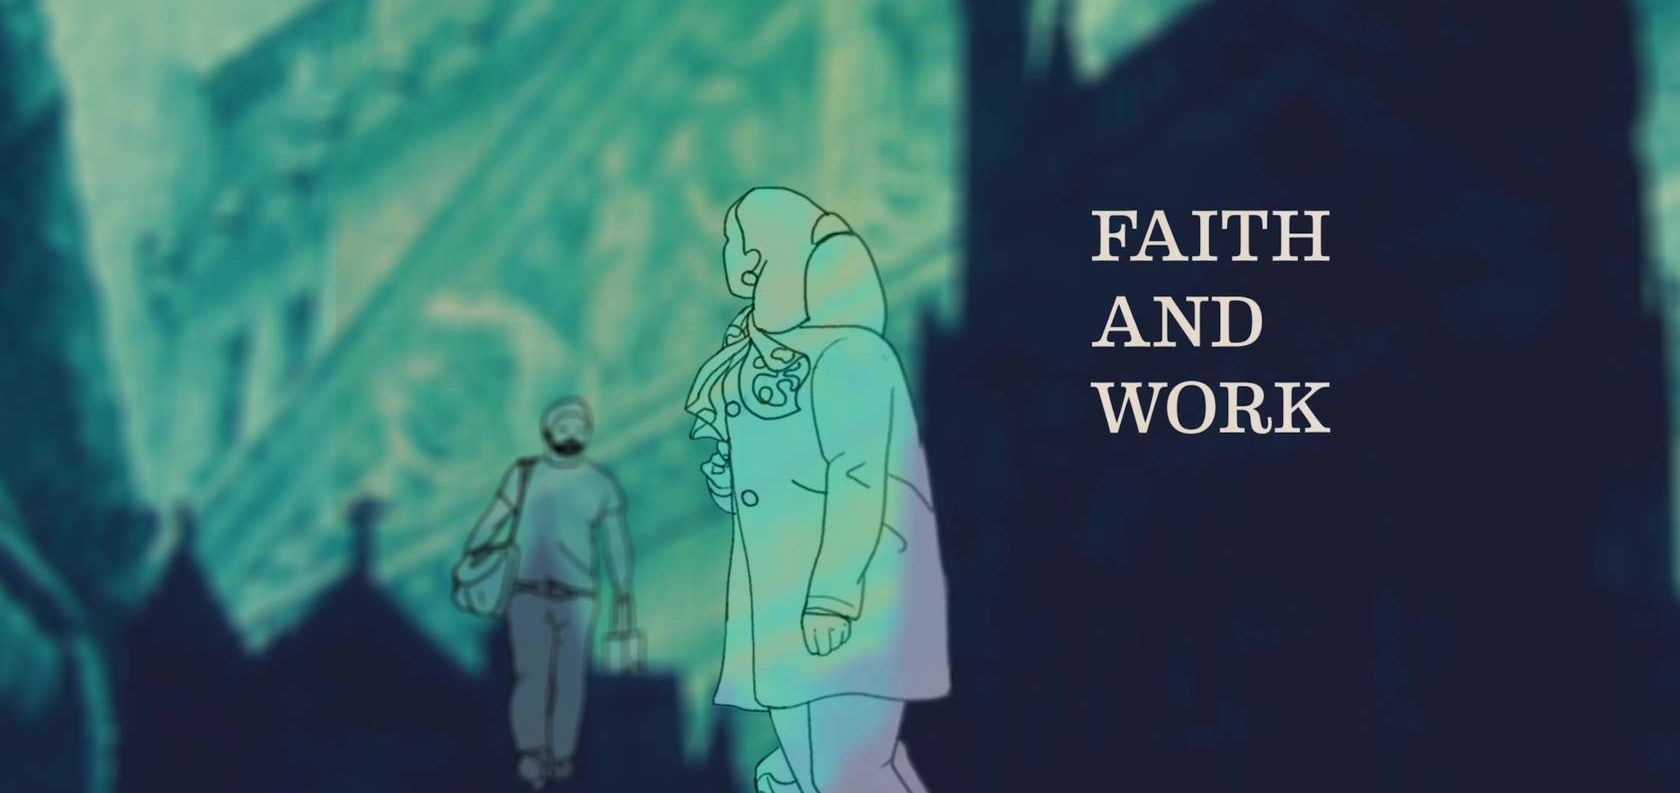 Faithful Work in a Challenging World